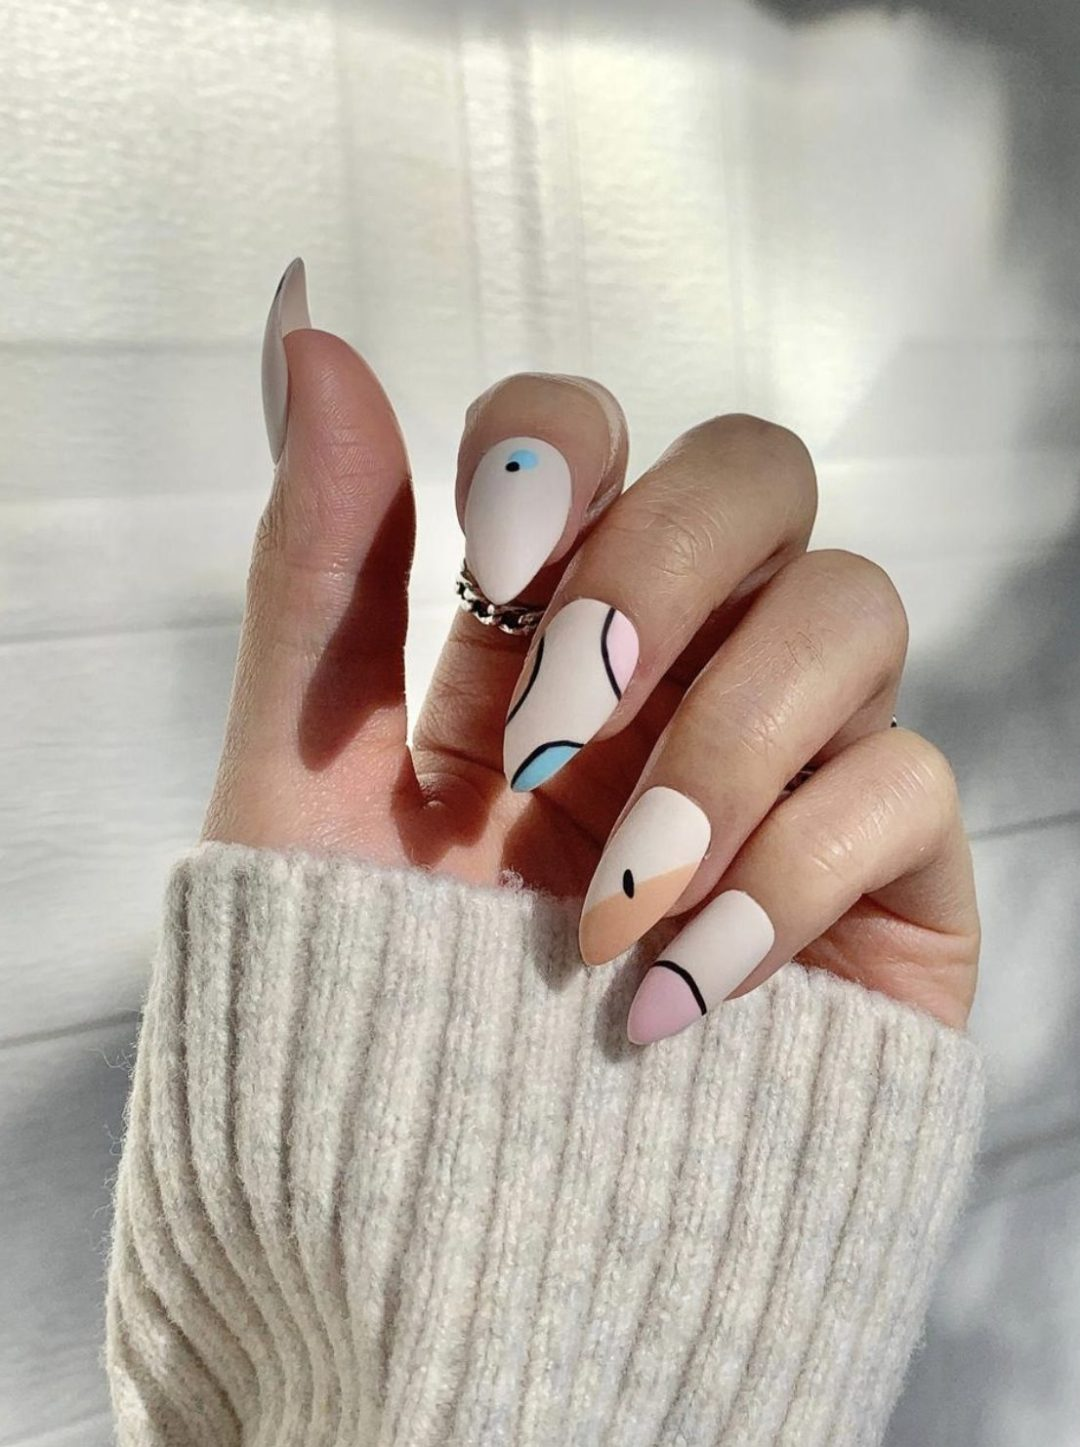 Pastel abstract nails with patterns